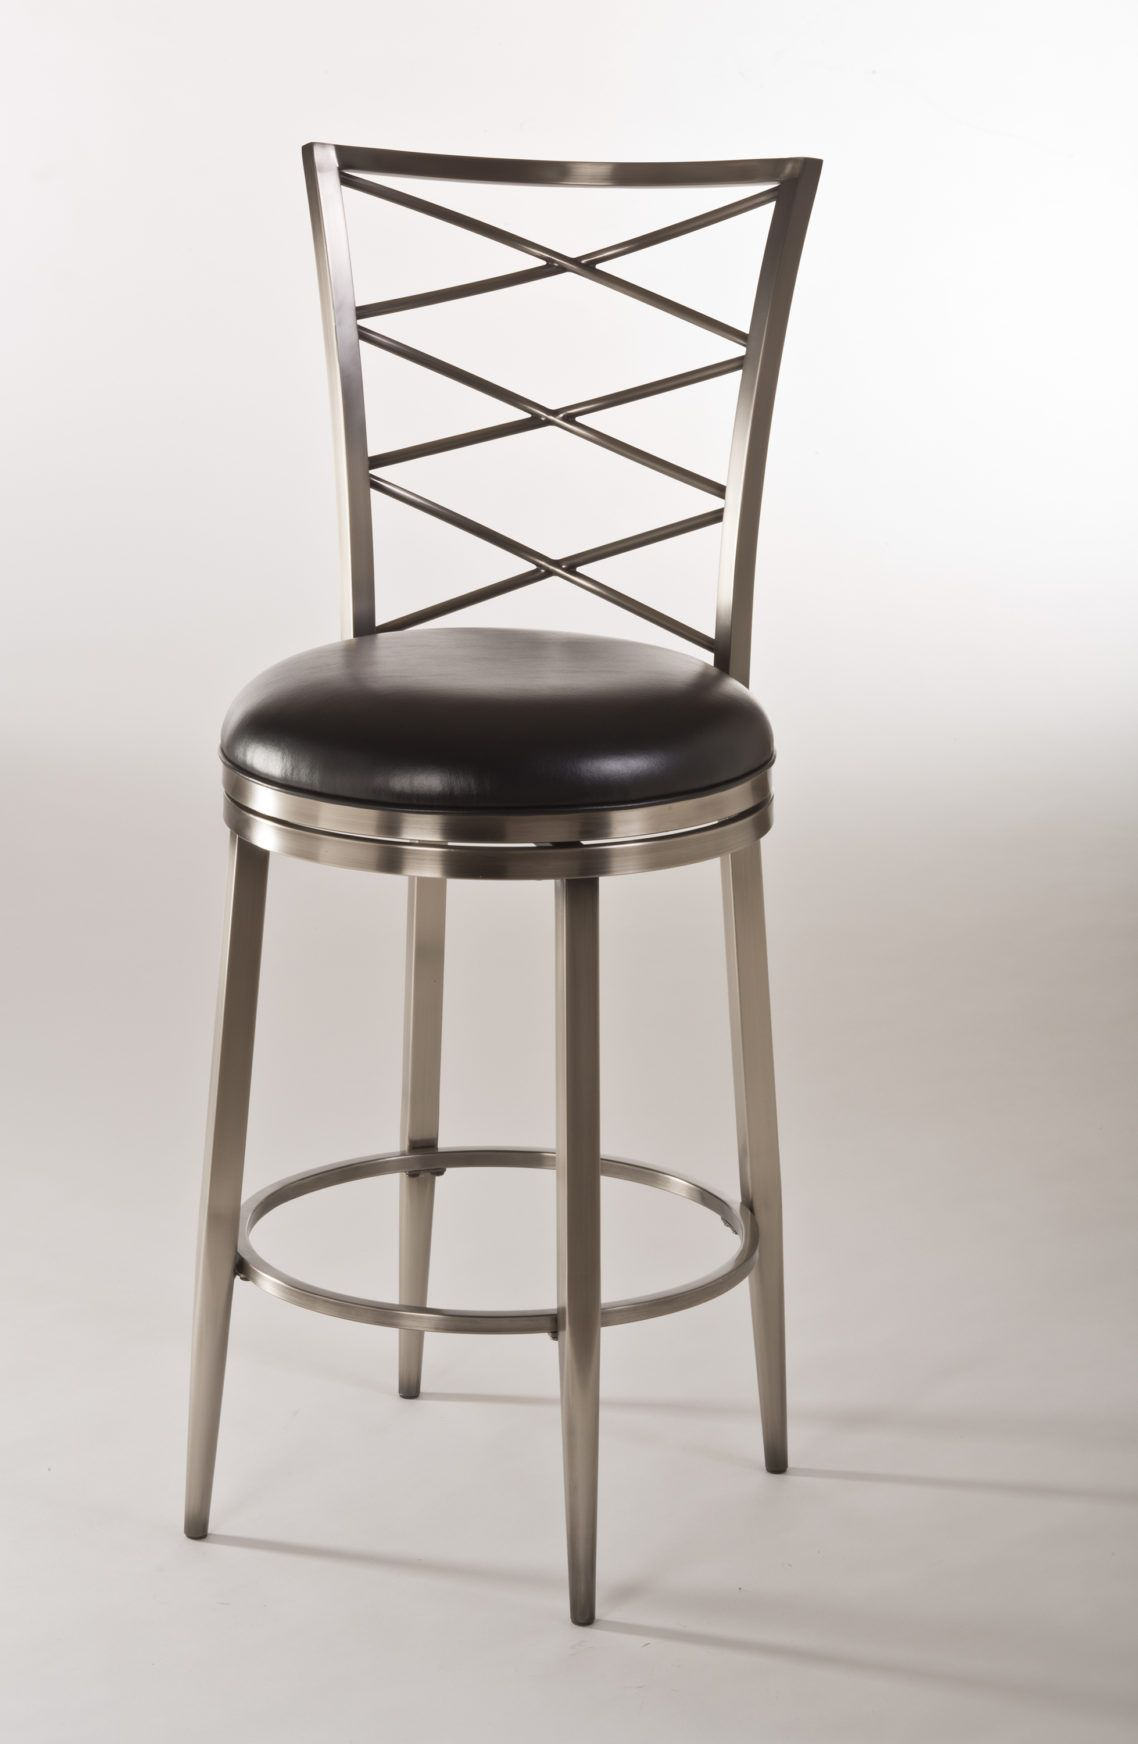 Awesome Agreeable Furniture Iron Bar Stool Design With Stainless Machost Co Dining Chair Design Ideas Machostcouk